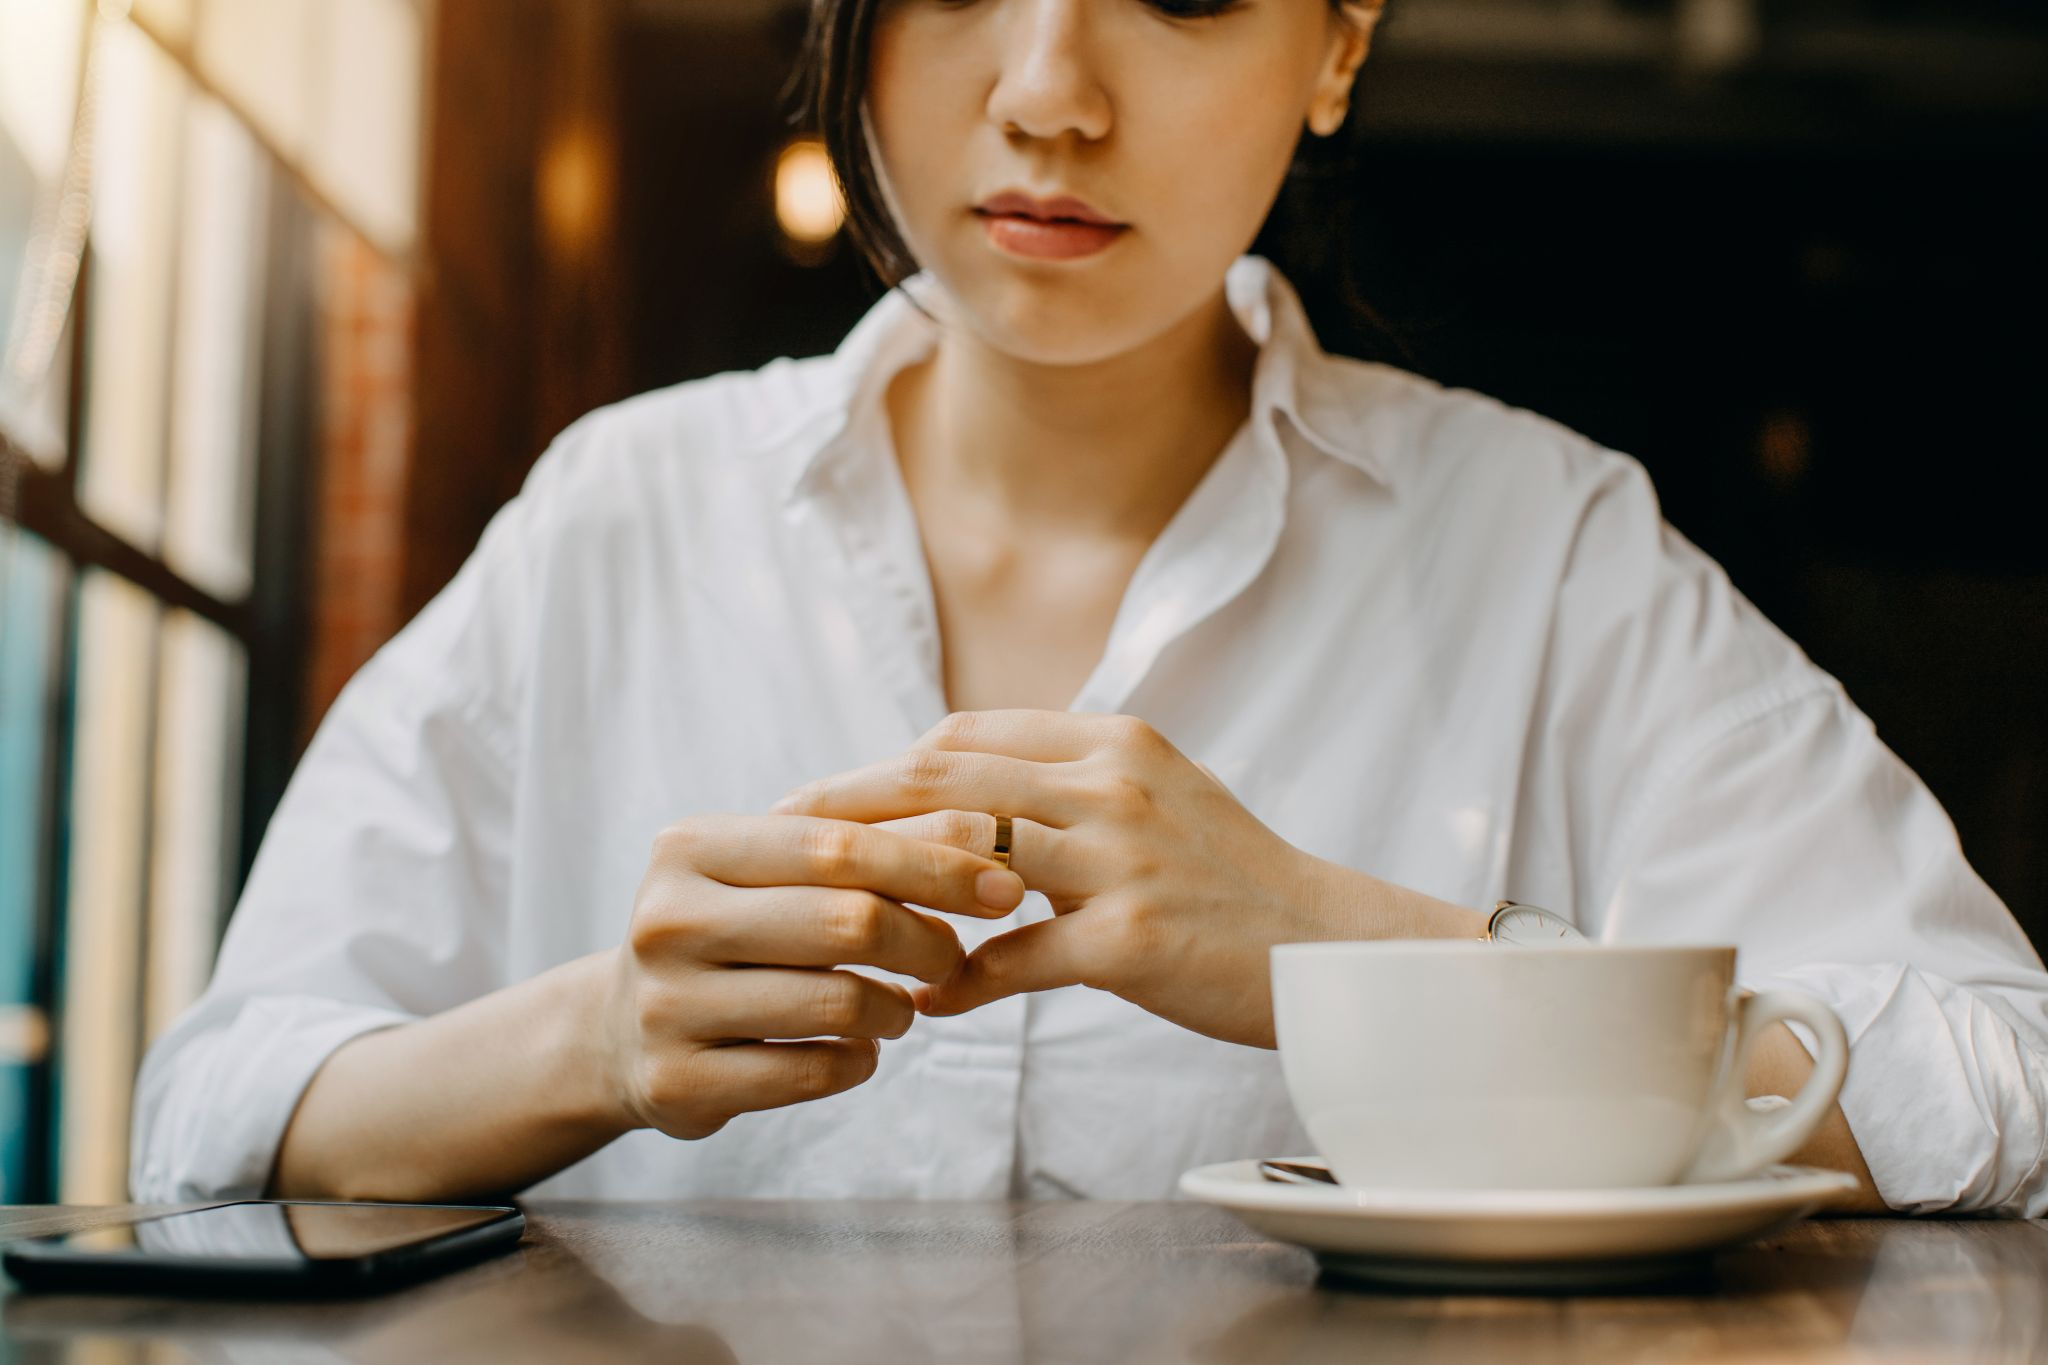 Dear Abby: Spouse removes wedding ring during separation